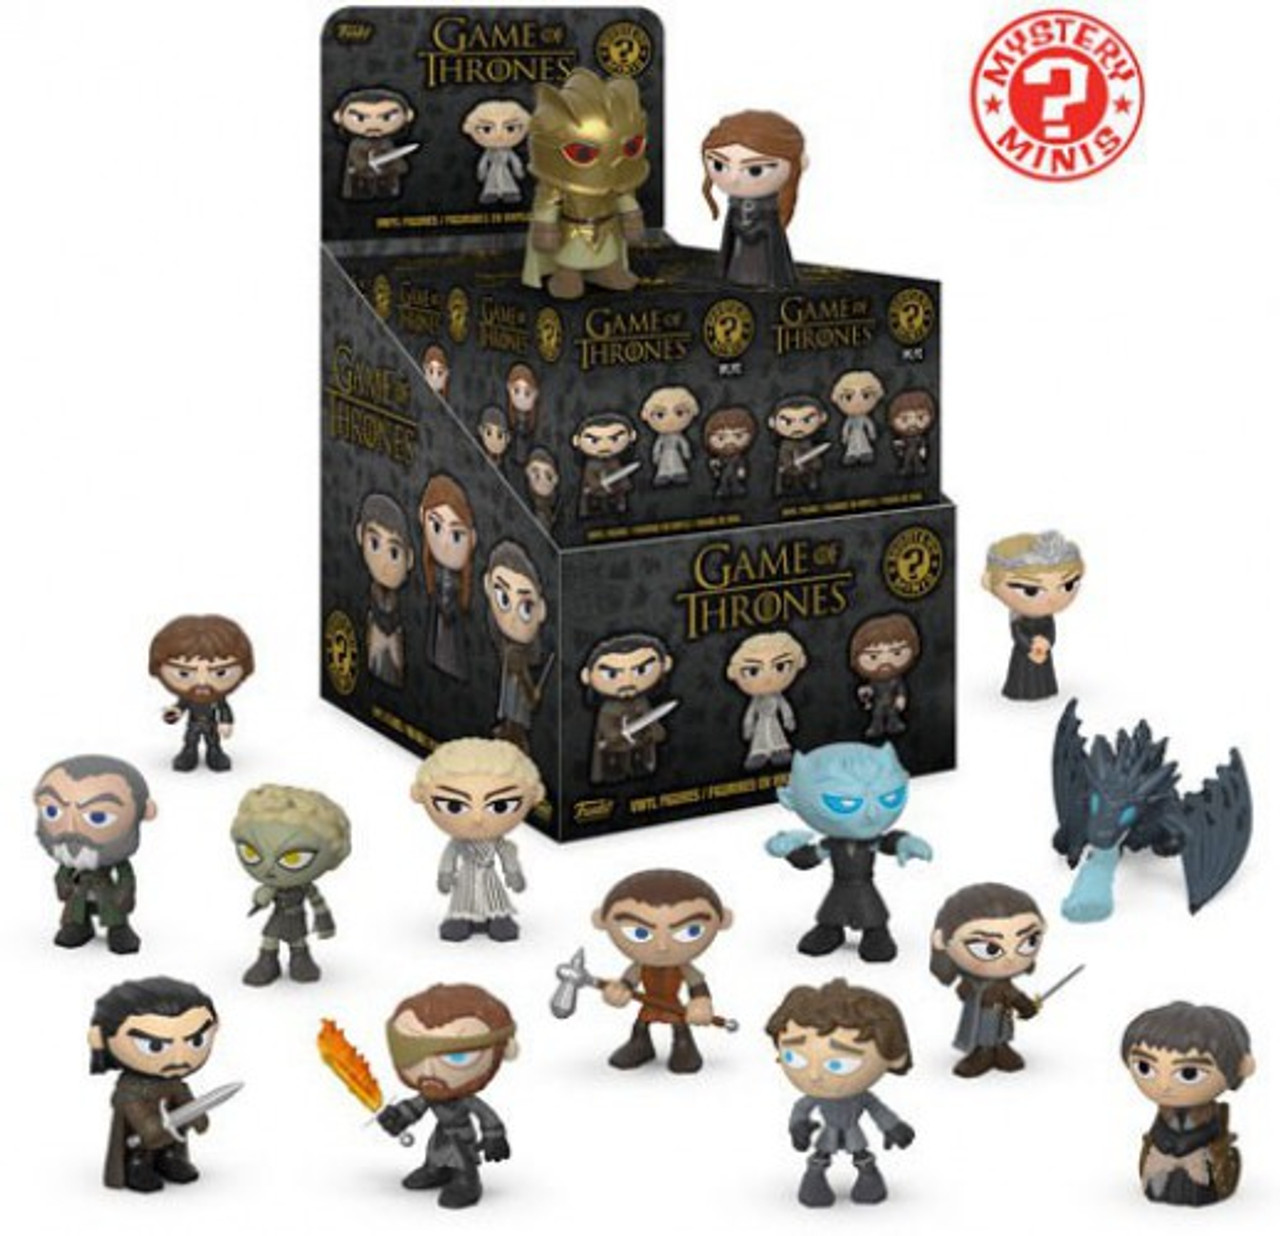 Funko GAME OF THRONES Series 4 Mystery Mini  CERCEI LANNISTER